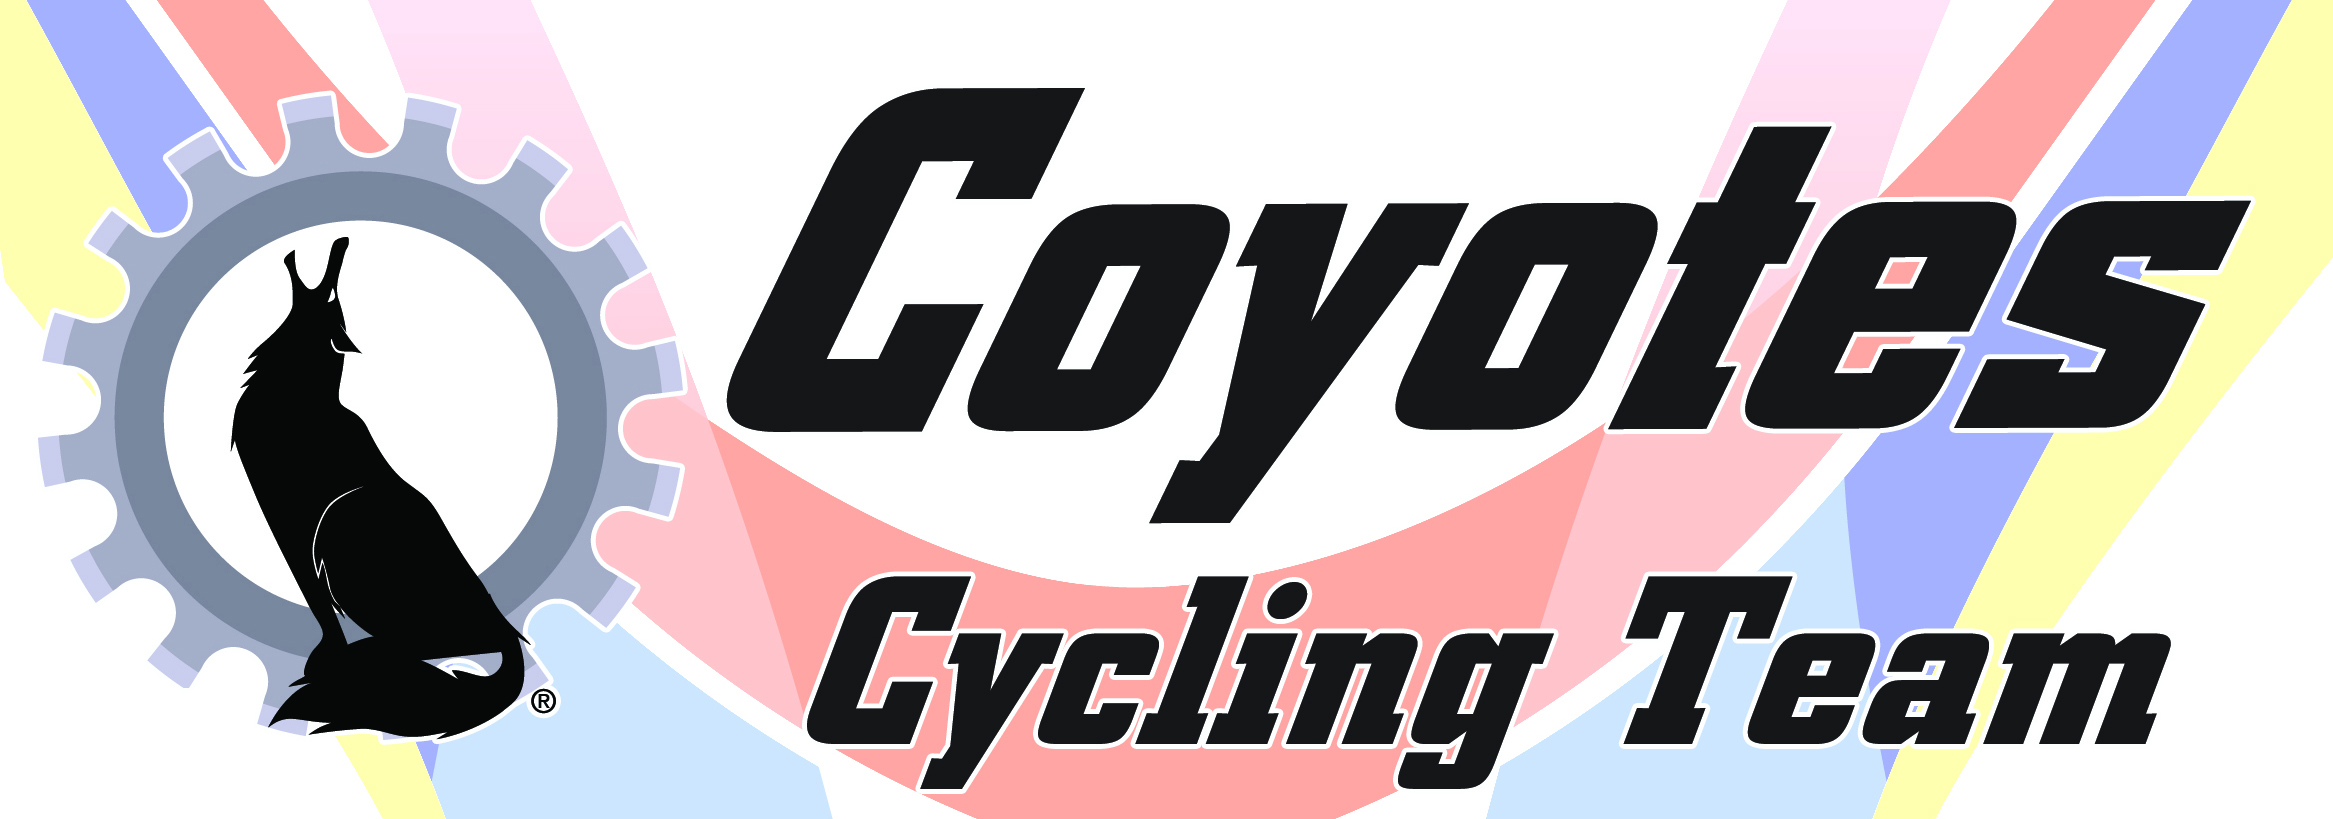 CyclingBanner2.jpg